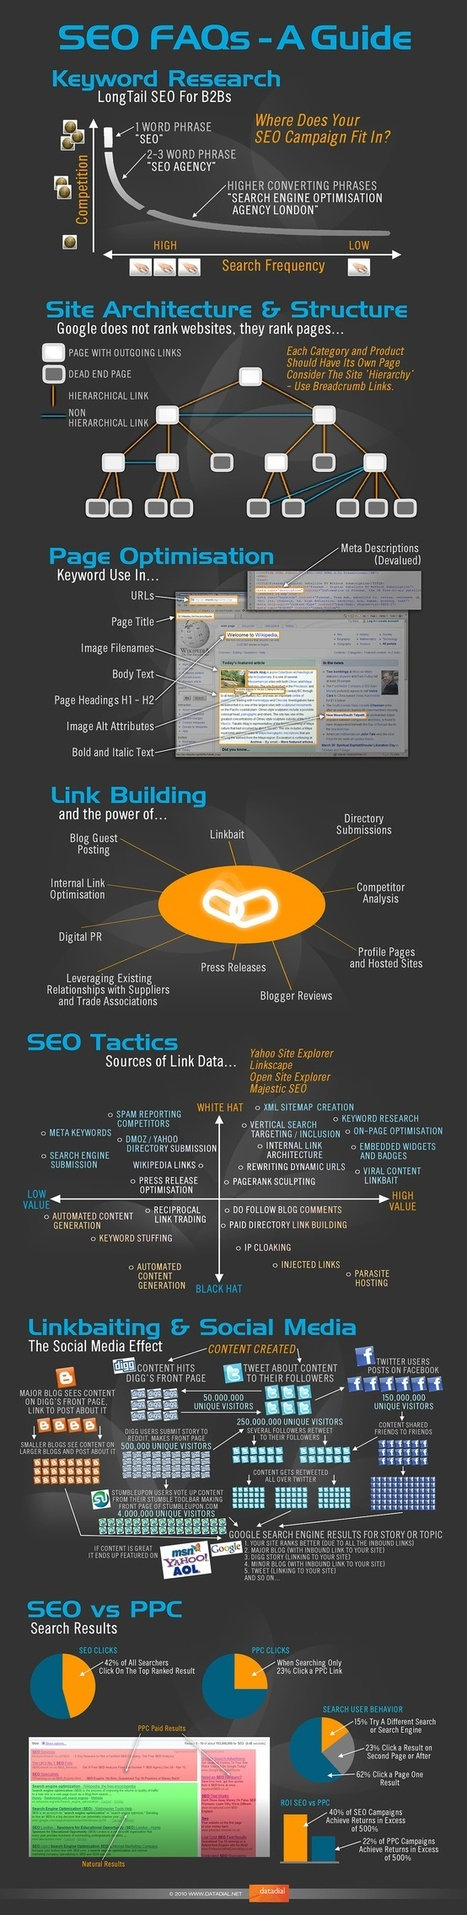 SEO FAQ's Guide [Infographic] | Digital SMBs | Scoop.it